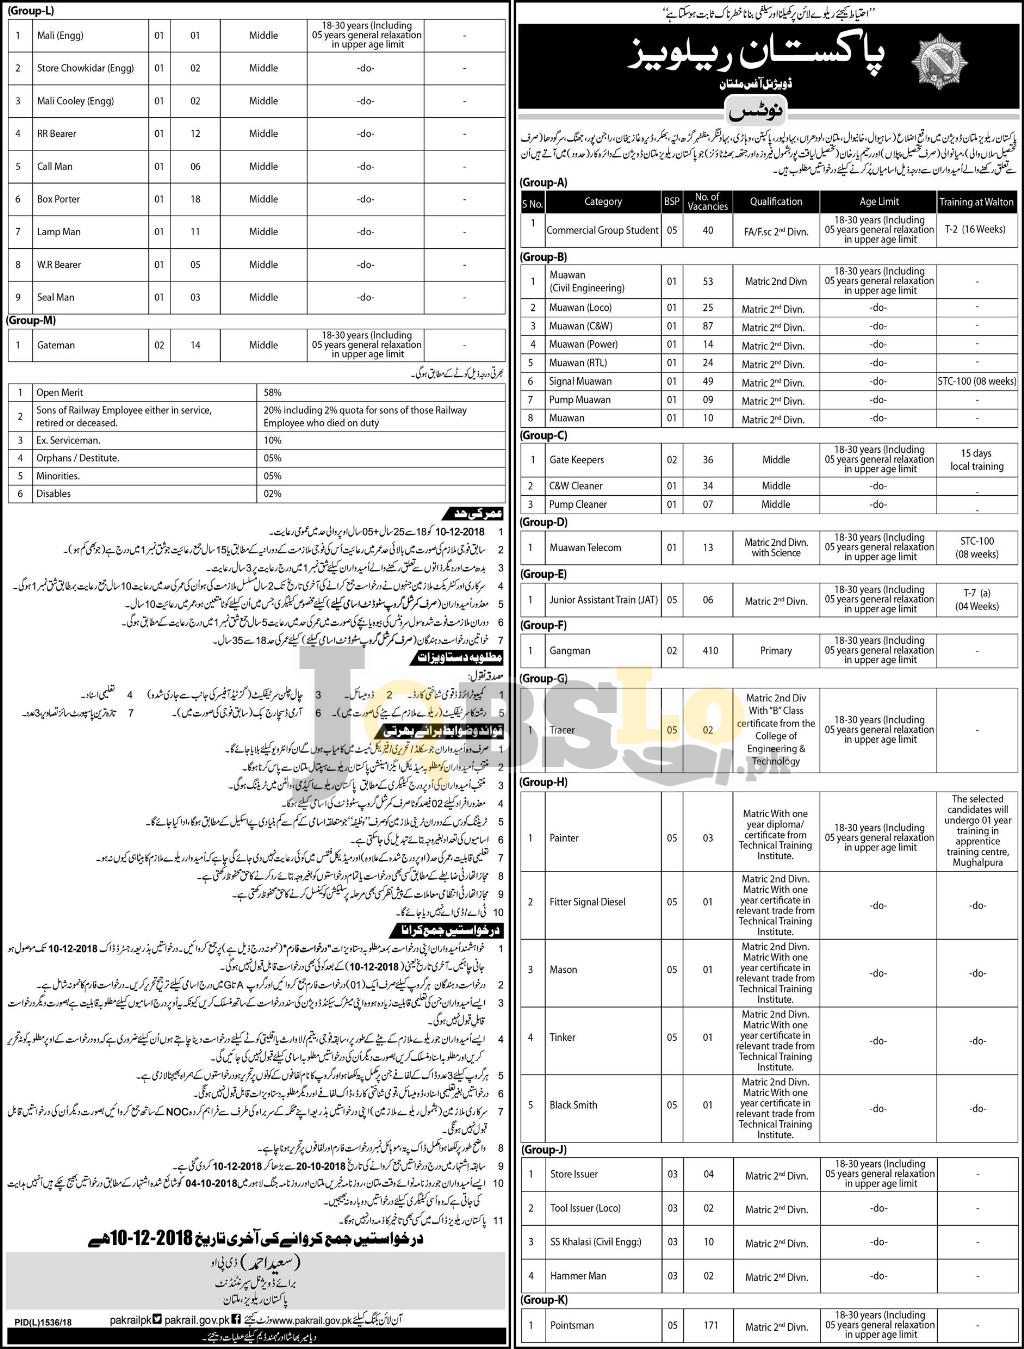 Pakistan Railway Multan Jobs 2018 Application Form BPS-05 to BPS-01